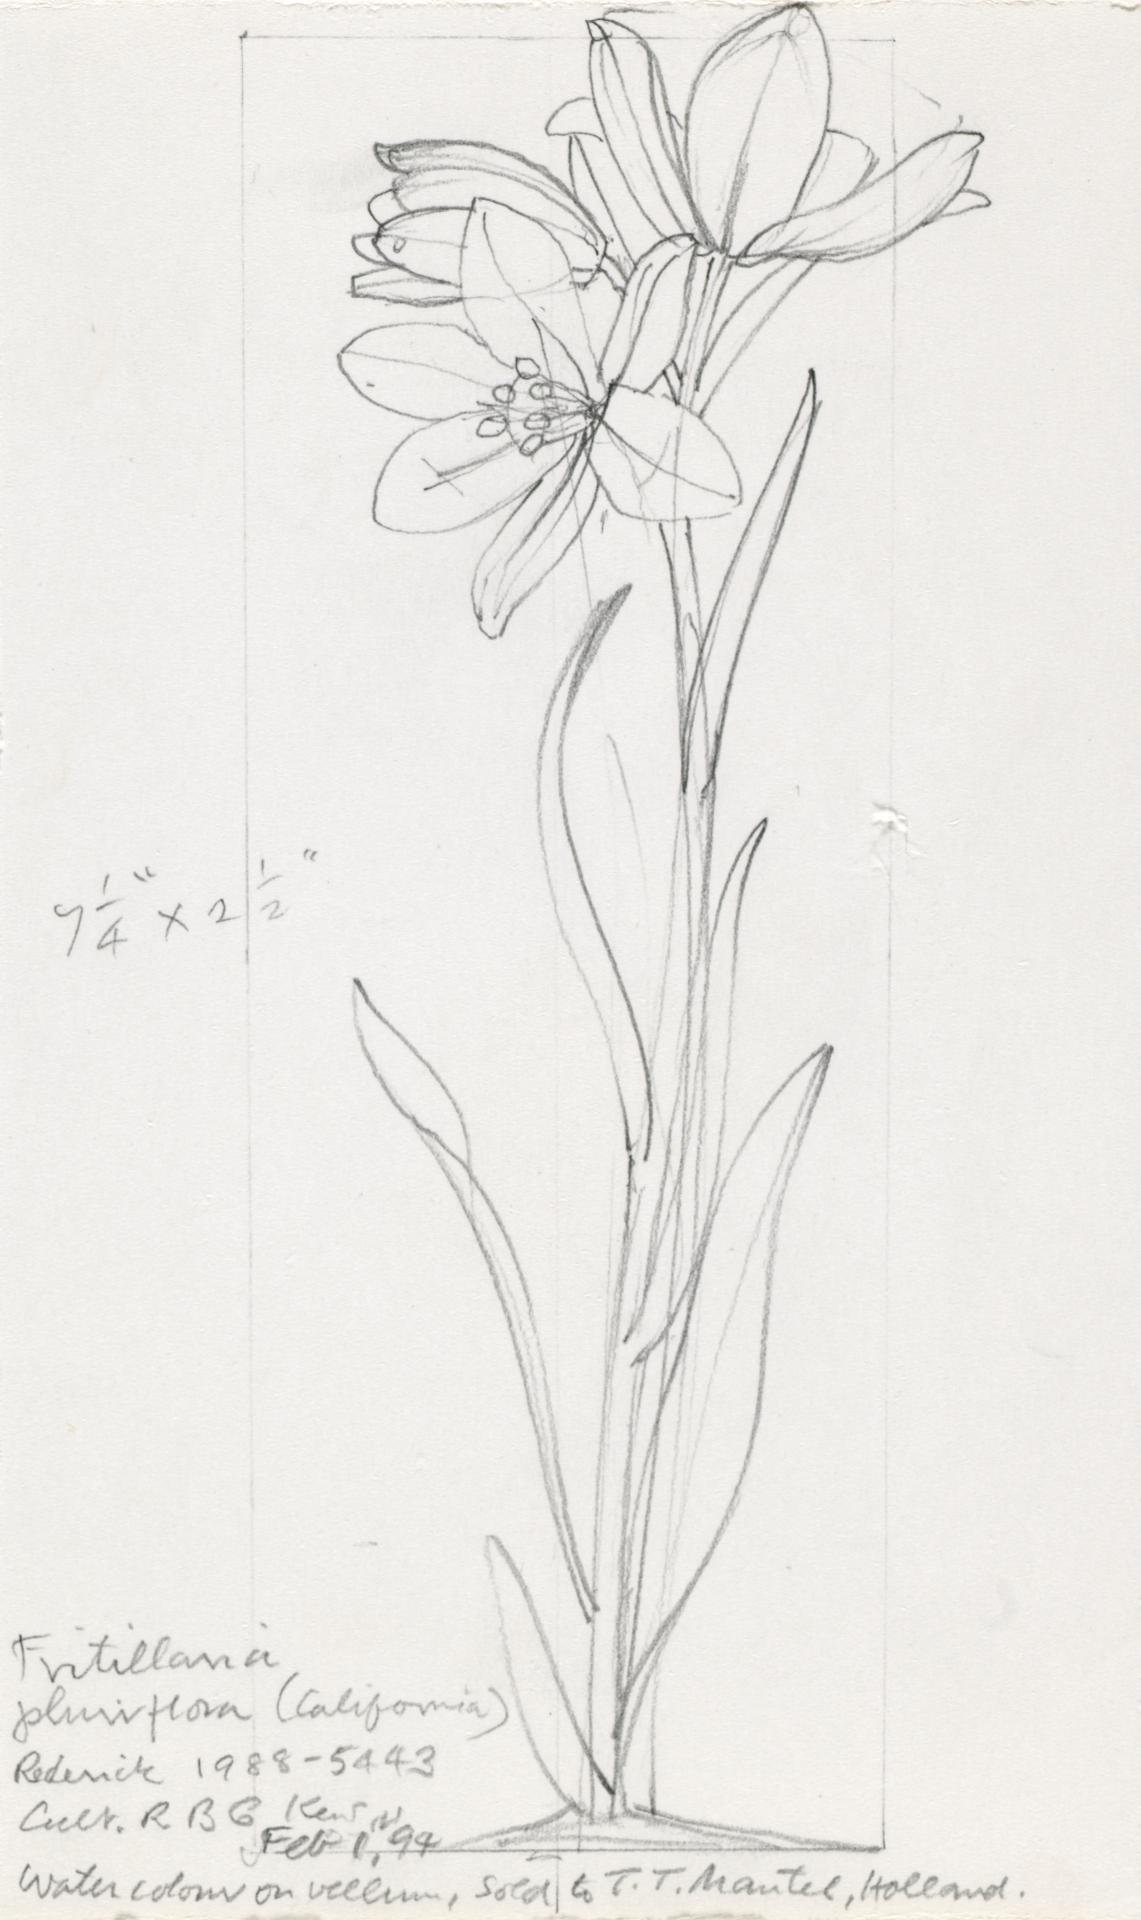 Working drawing for Fritillaria pluriflora